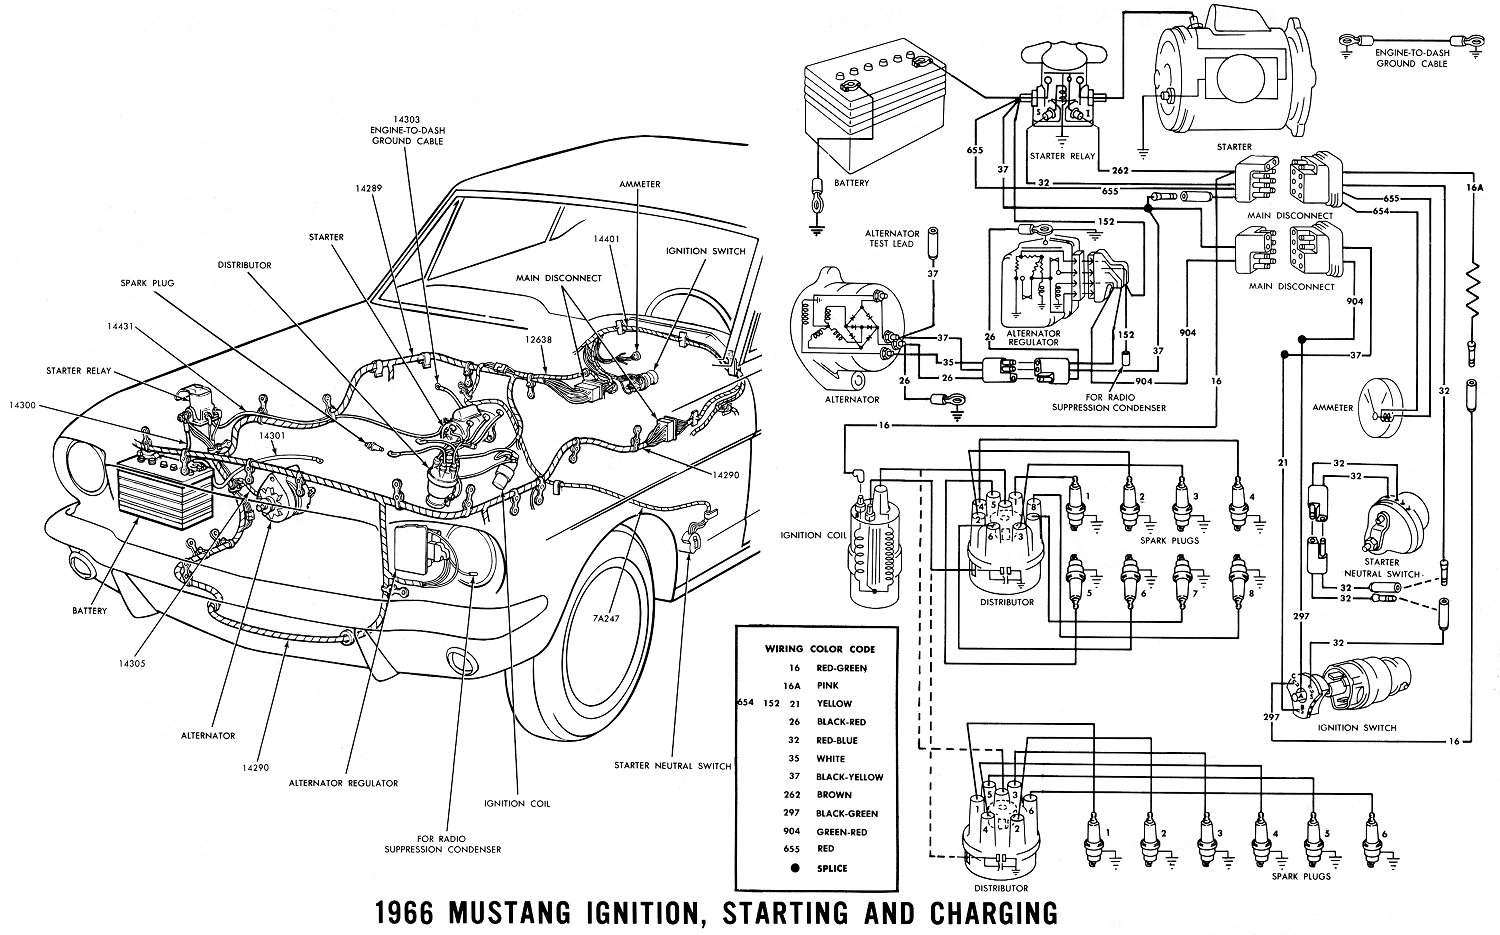 66ignit 1966 mustang wiring diagrams average joe restoration au falcon engine wiring diagram at bakdesigns.co